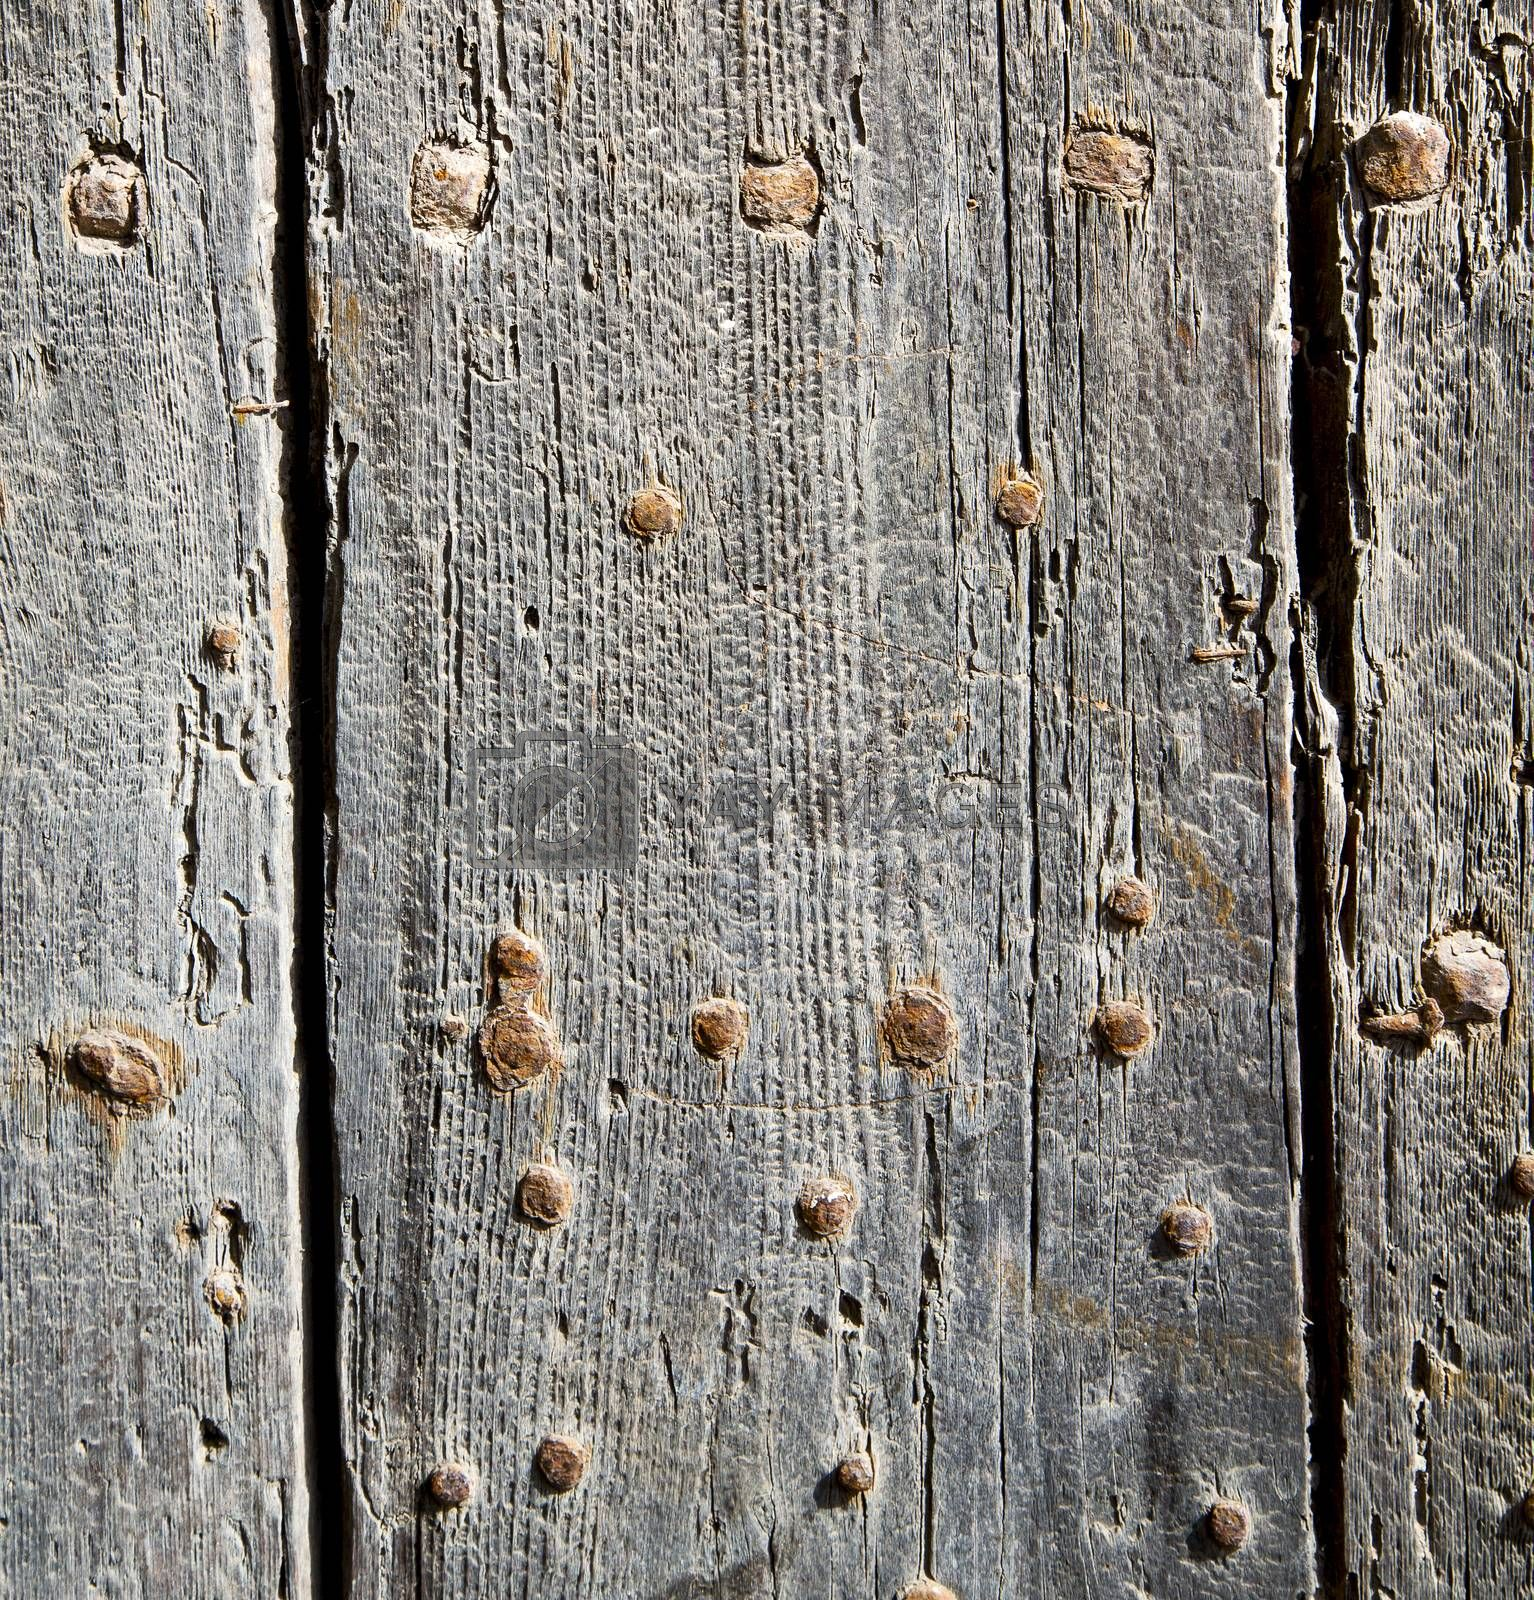 nail dirty stripped paint in the brown wood door and rusty yello by lkpro